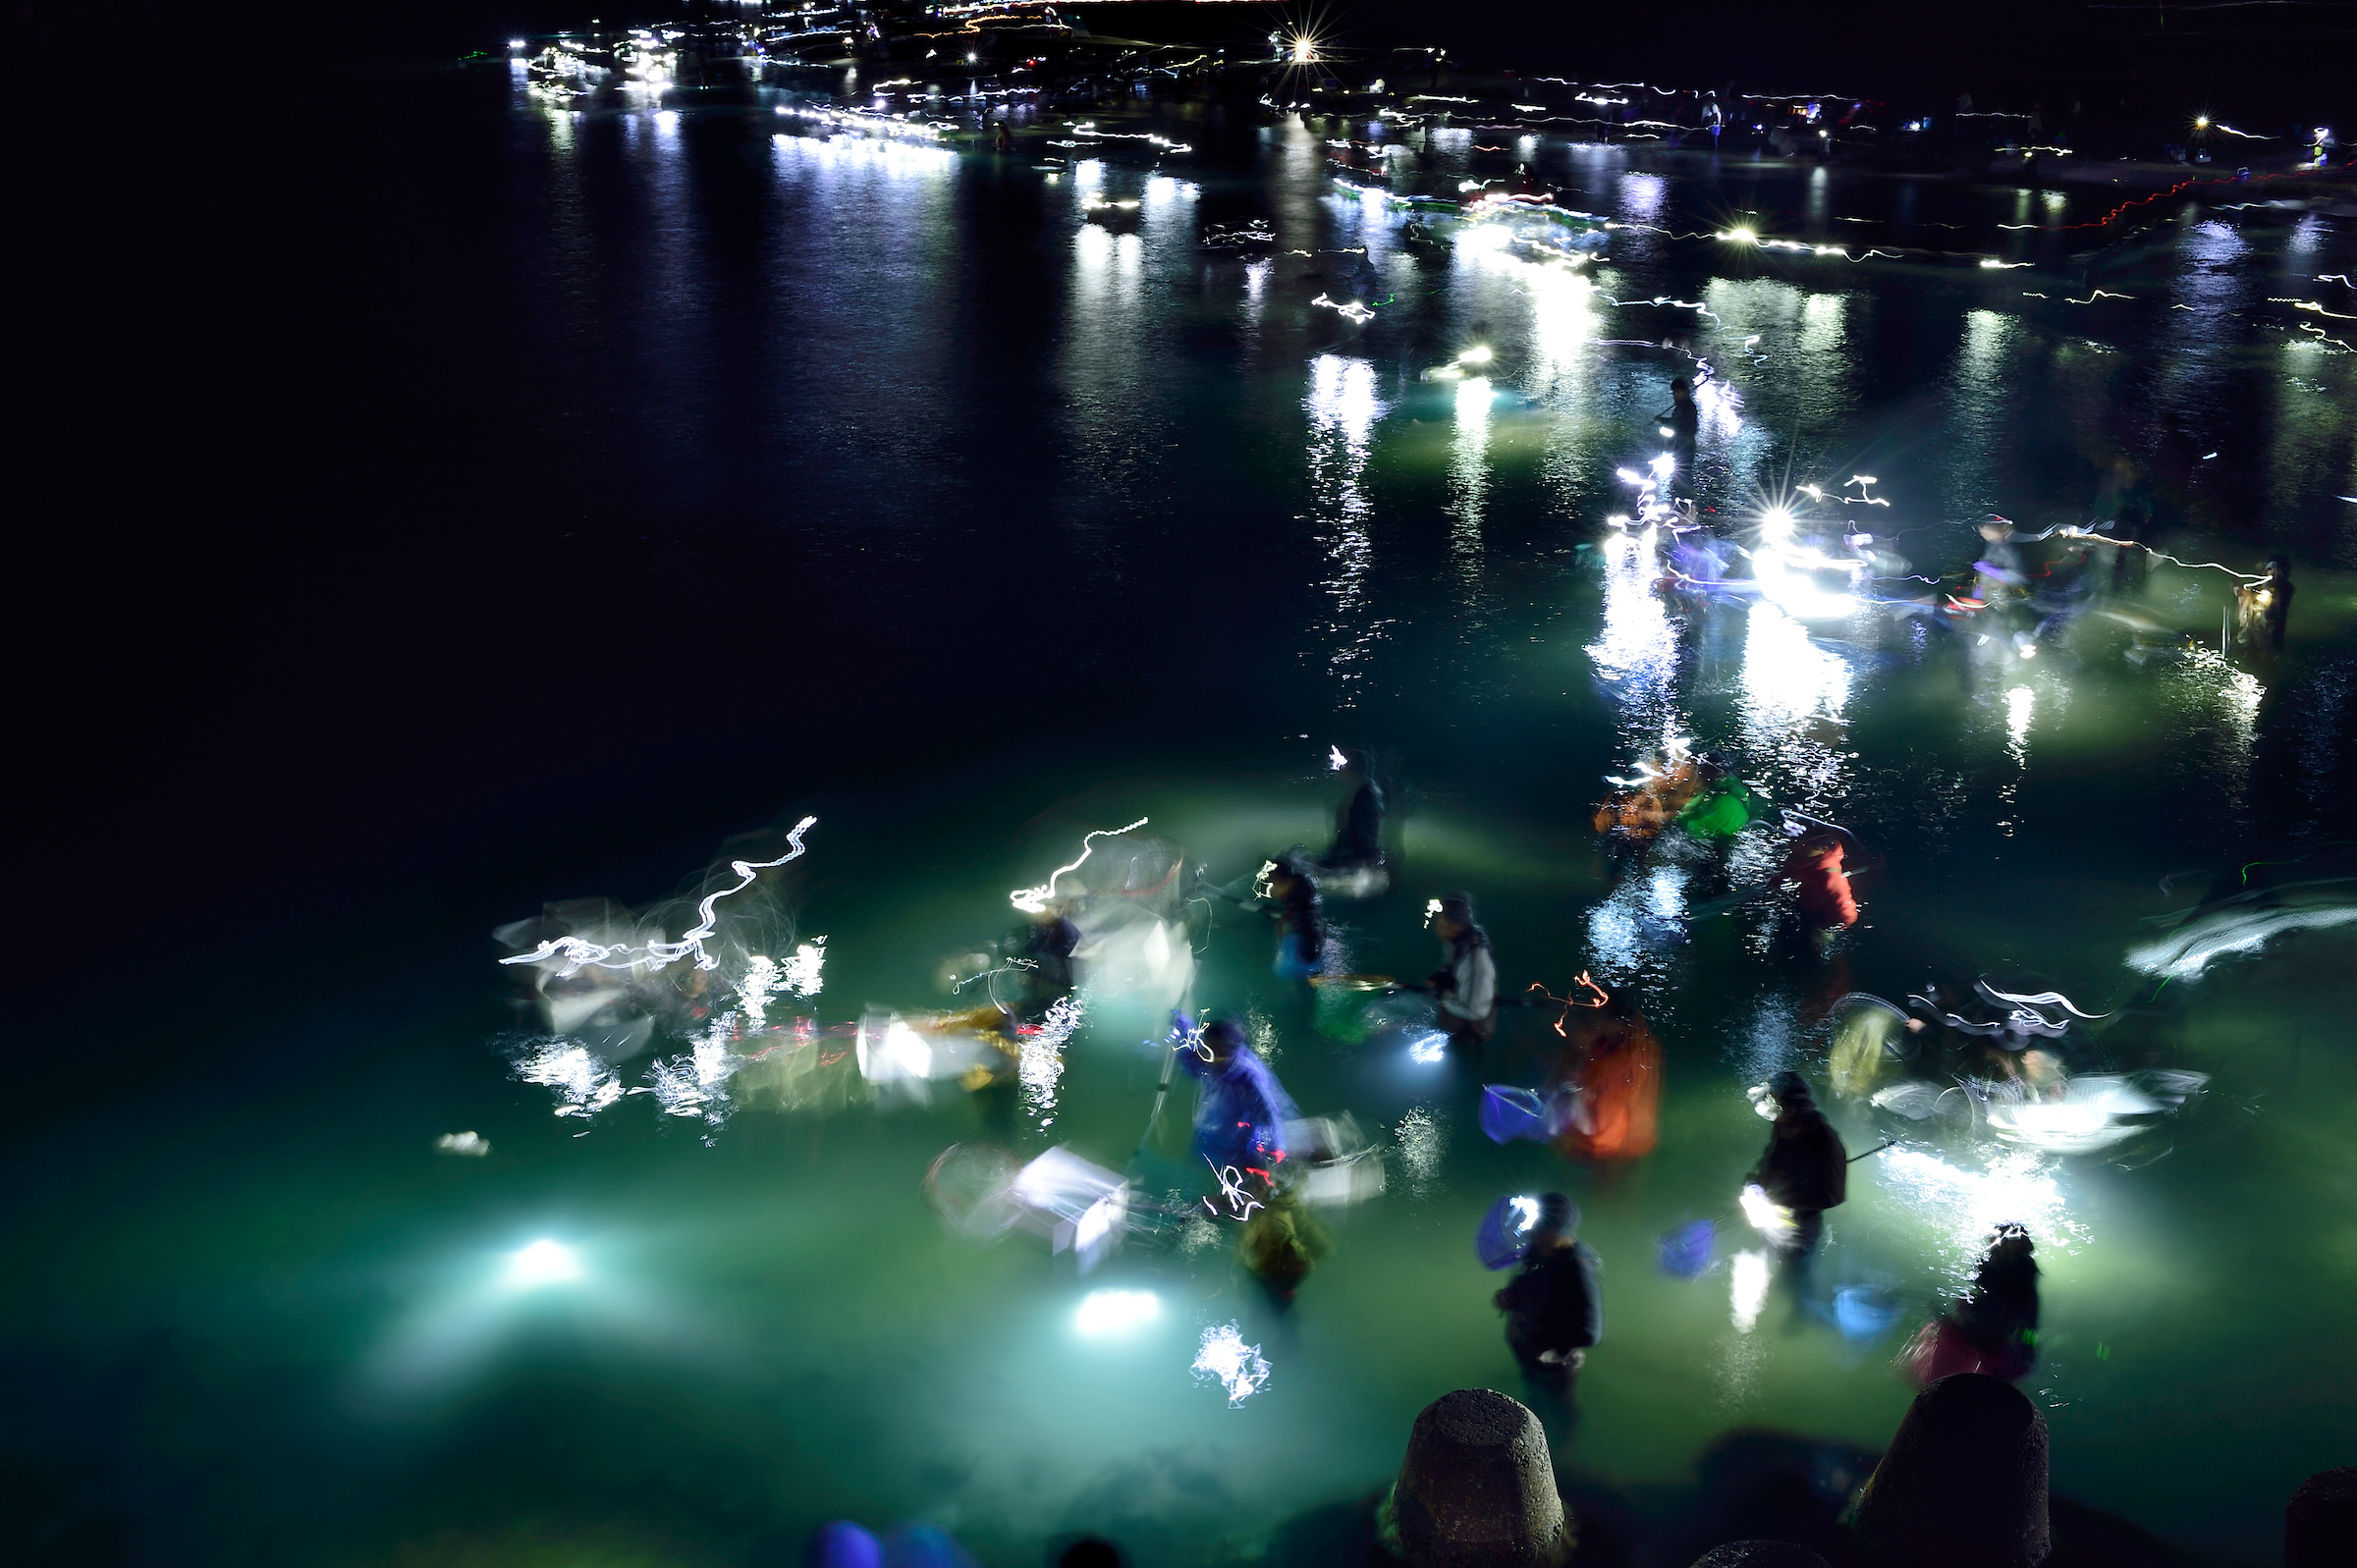 With their flashlight beams mirroring the glow of their quarry, fishers make their way through Toyama Bay in search of spawning firefly squid.